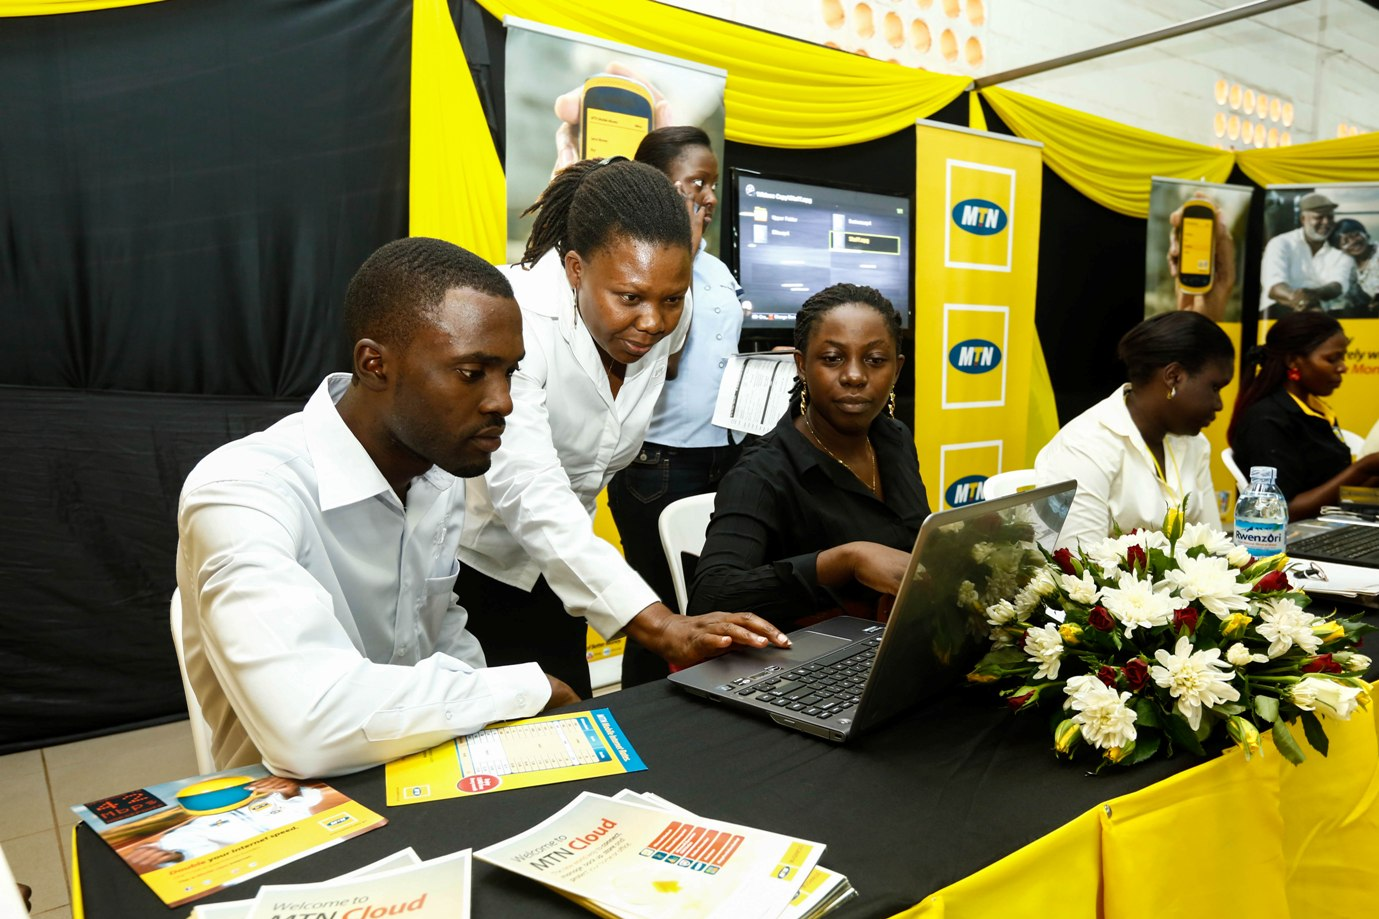 MTN Uganda facilitates an SME workshop for business growth in partnership with Private Sector Foundation